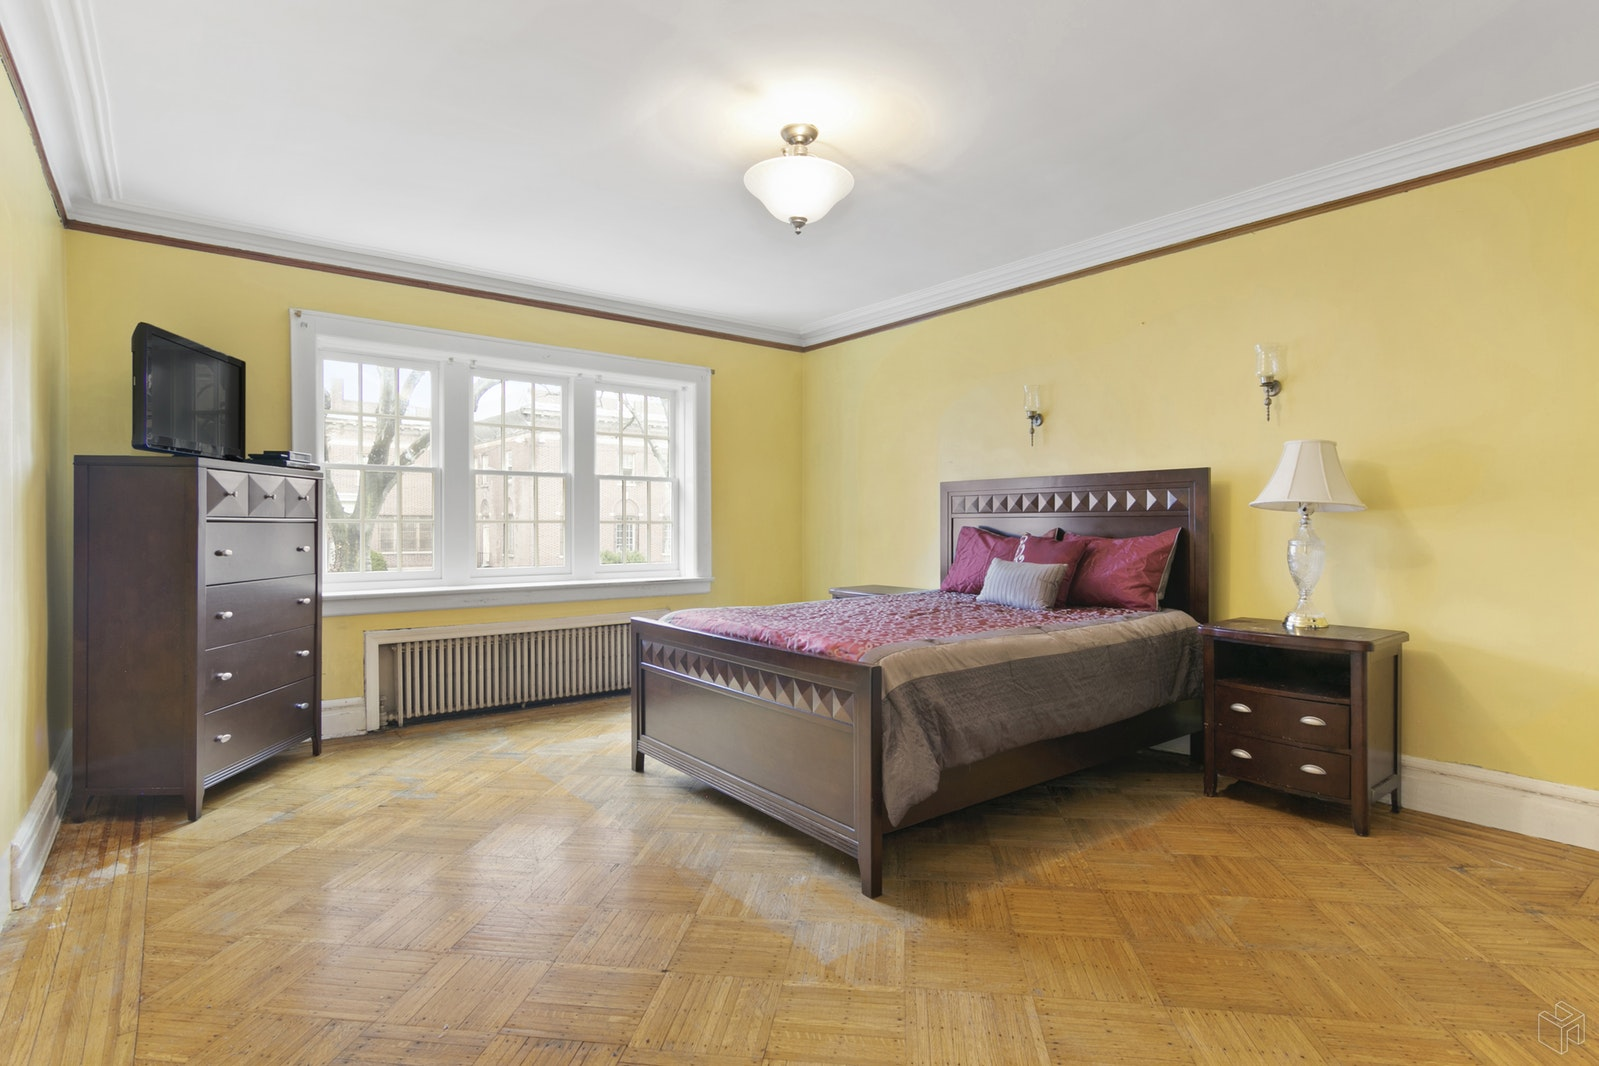 2108 Kenmore Terrace, Flatbush, Brooklyn, NY, 11226, $1,650,000, Property For Sale, Halstead Real Estate, Photo 5